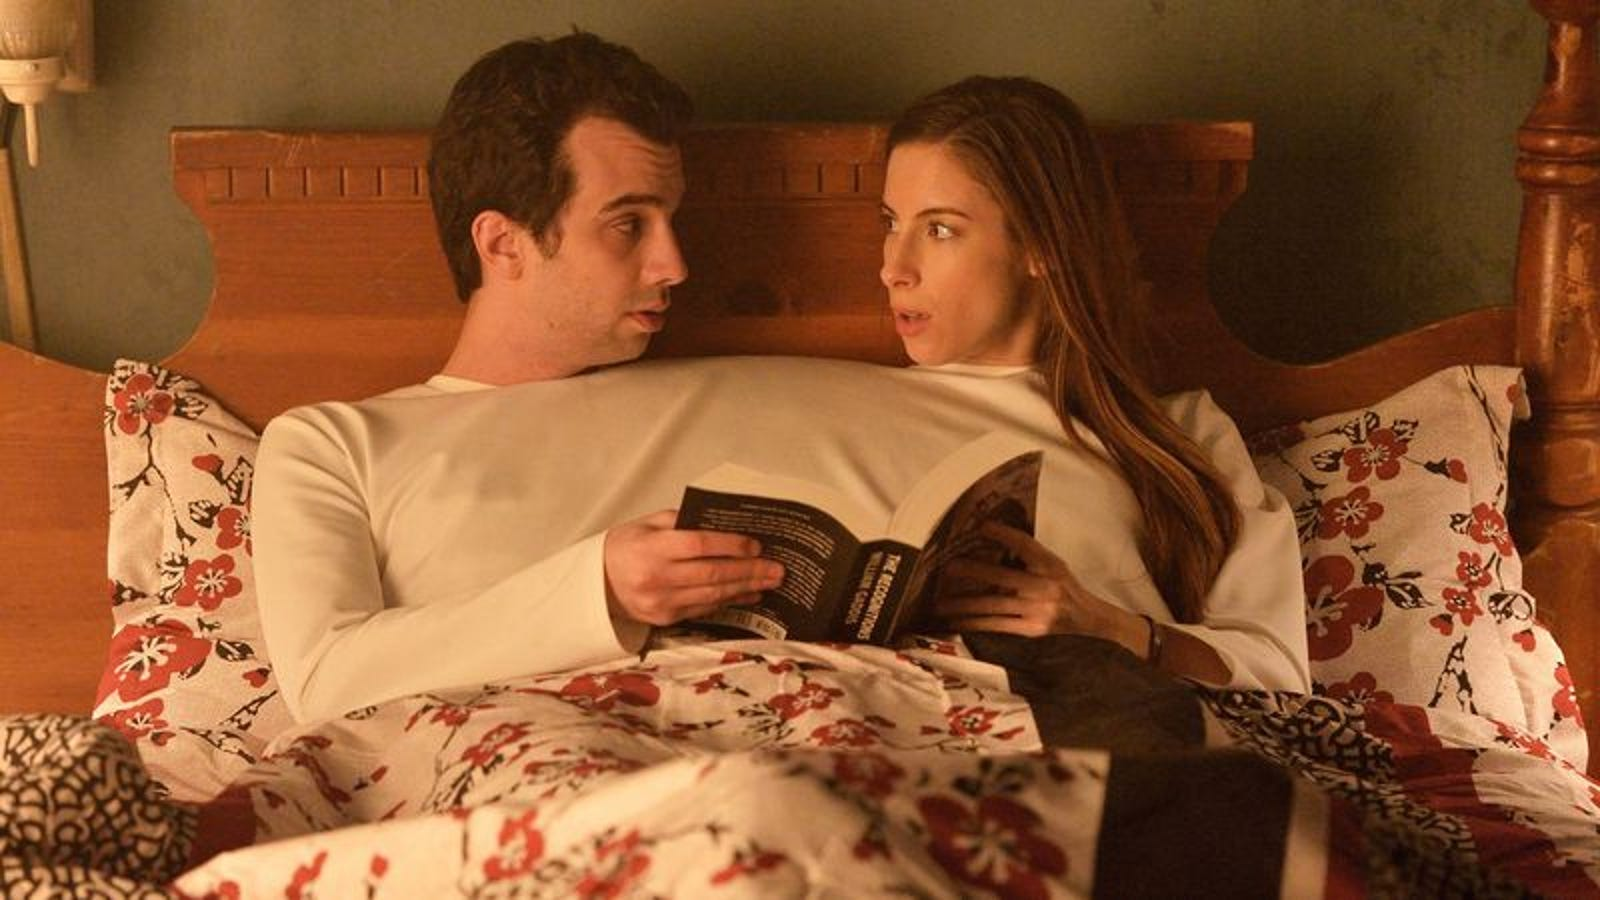 Man seeking women sitss